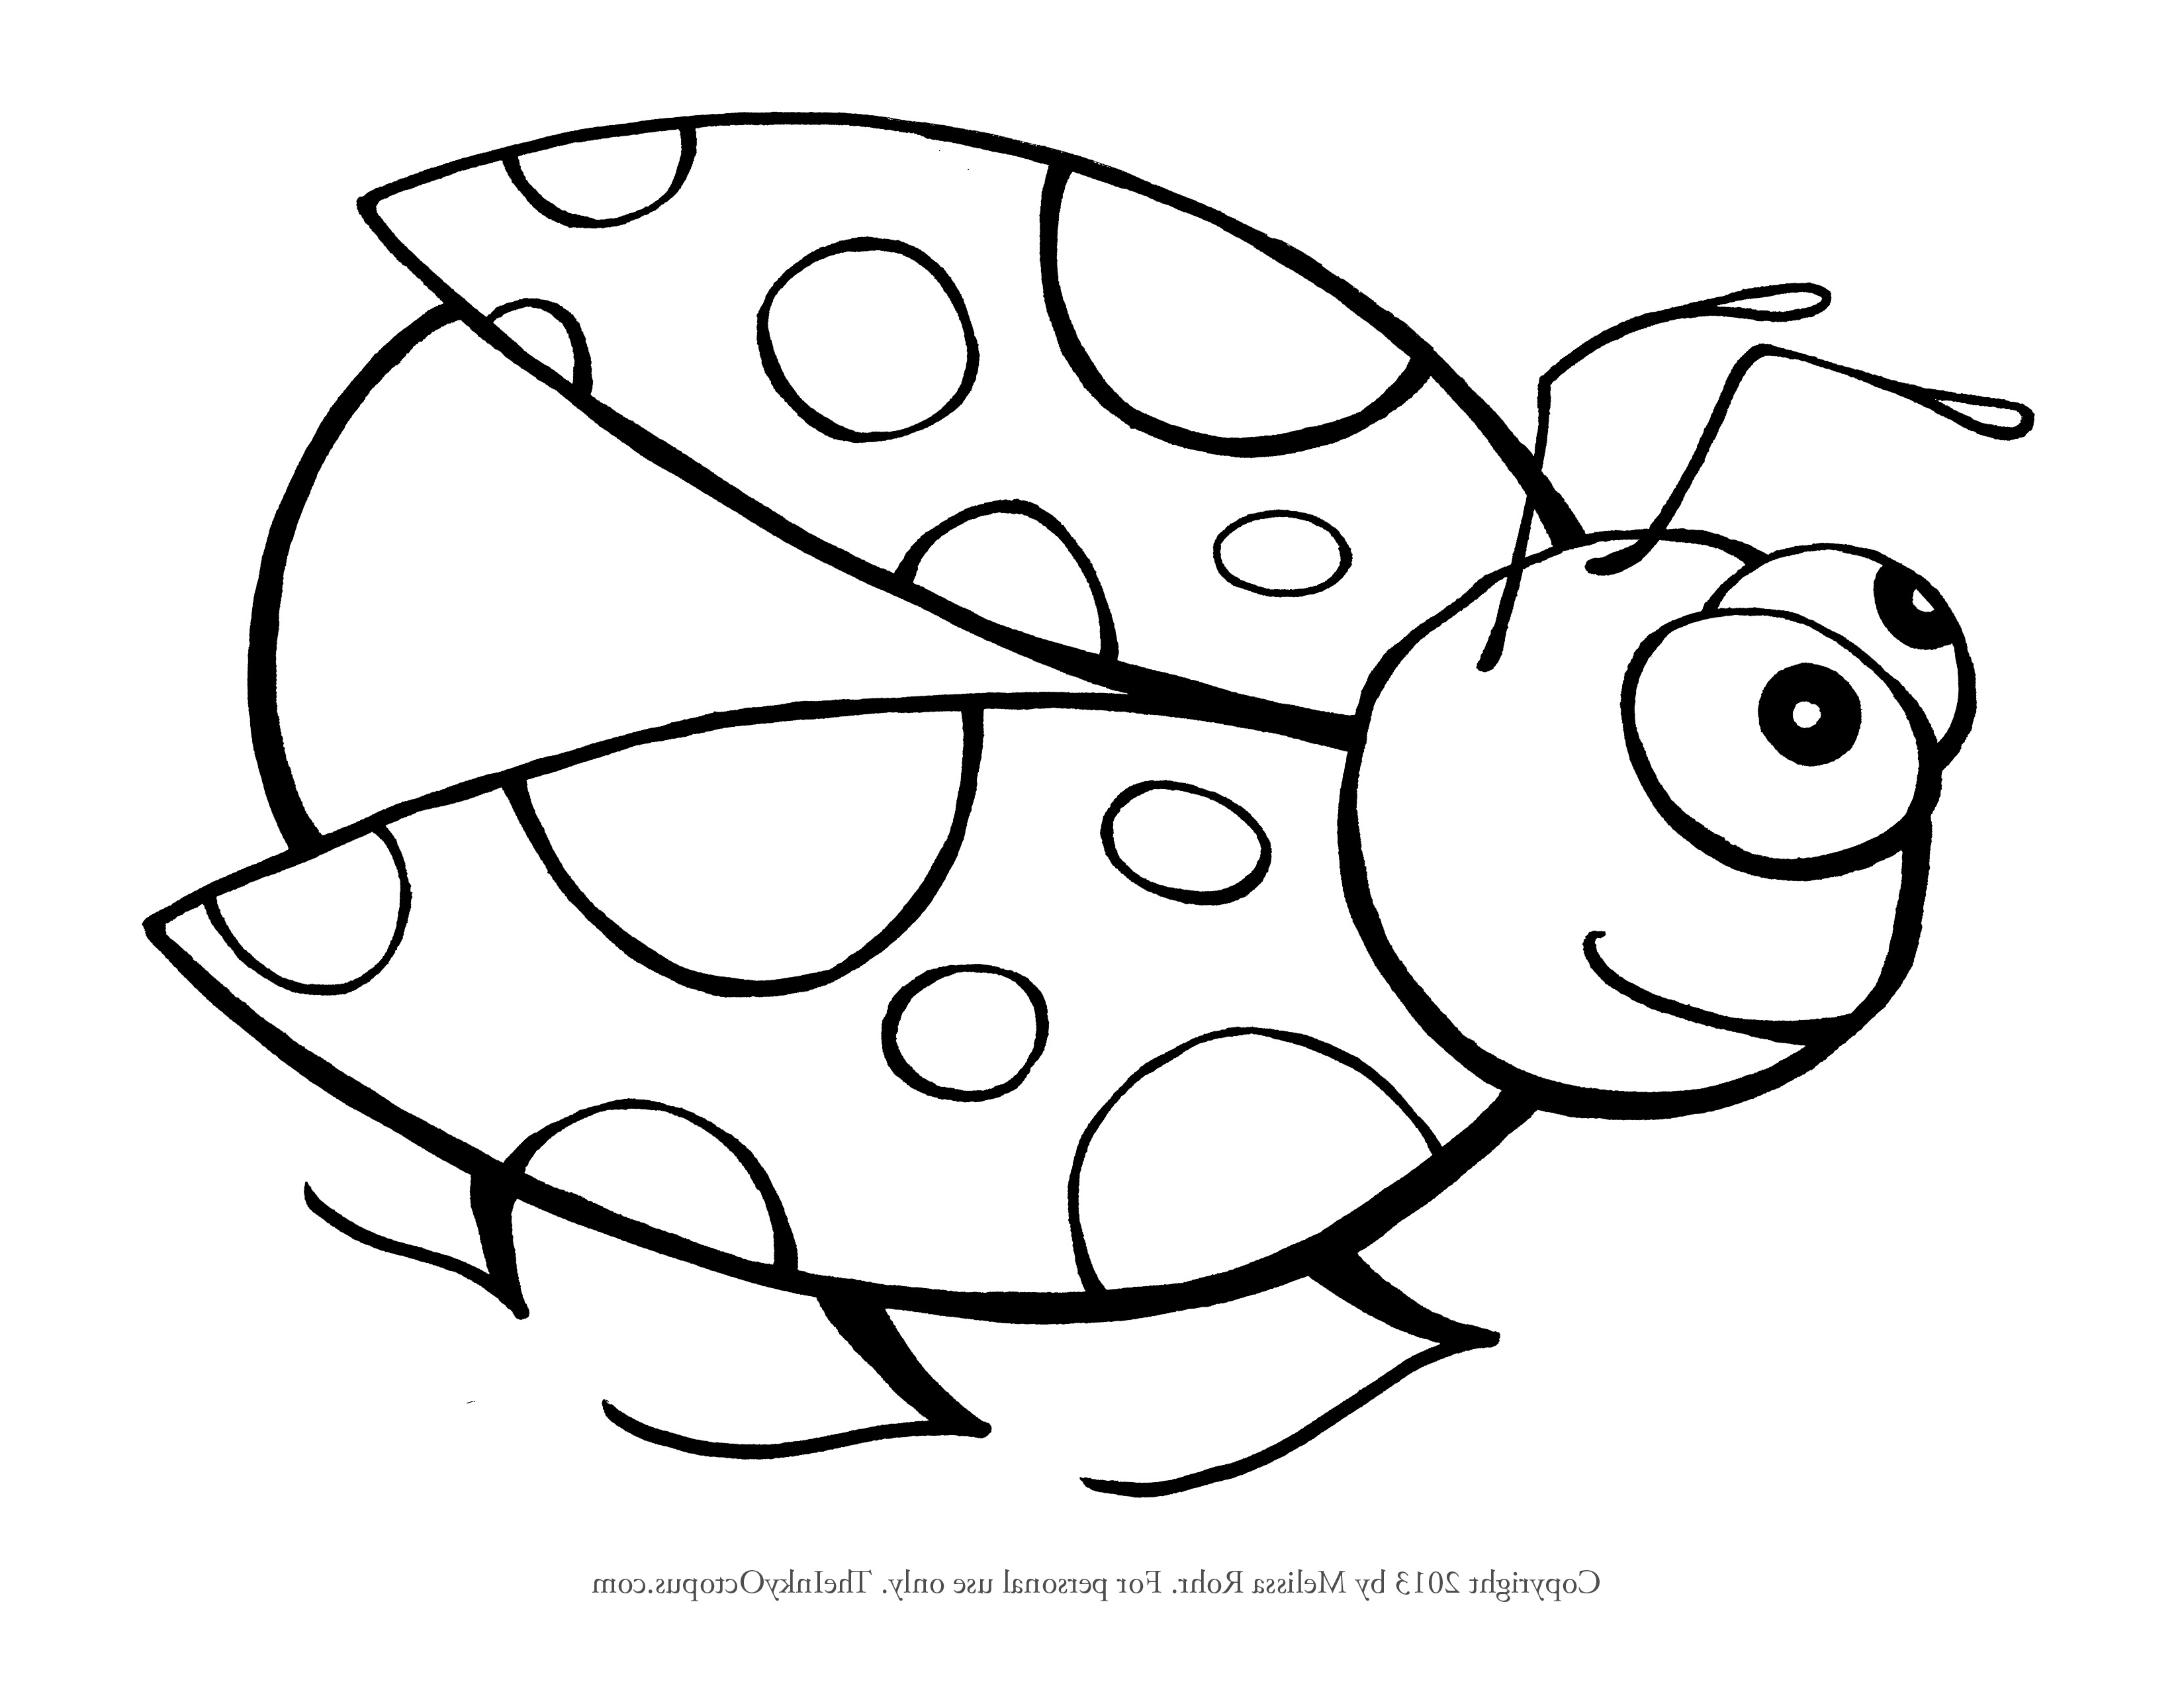 lady bugs coloring pages ladybug coloring pages getcoloringpagescom bugs pages lady coloring